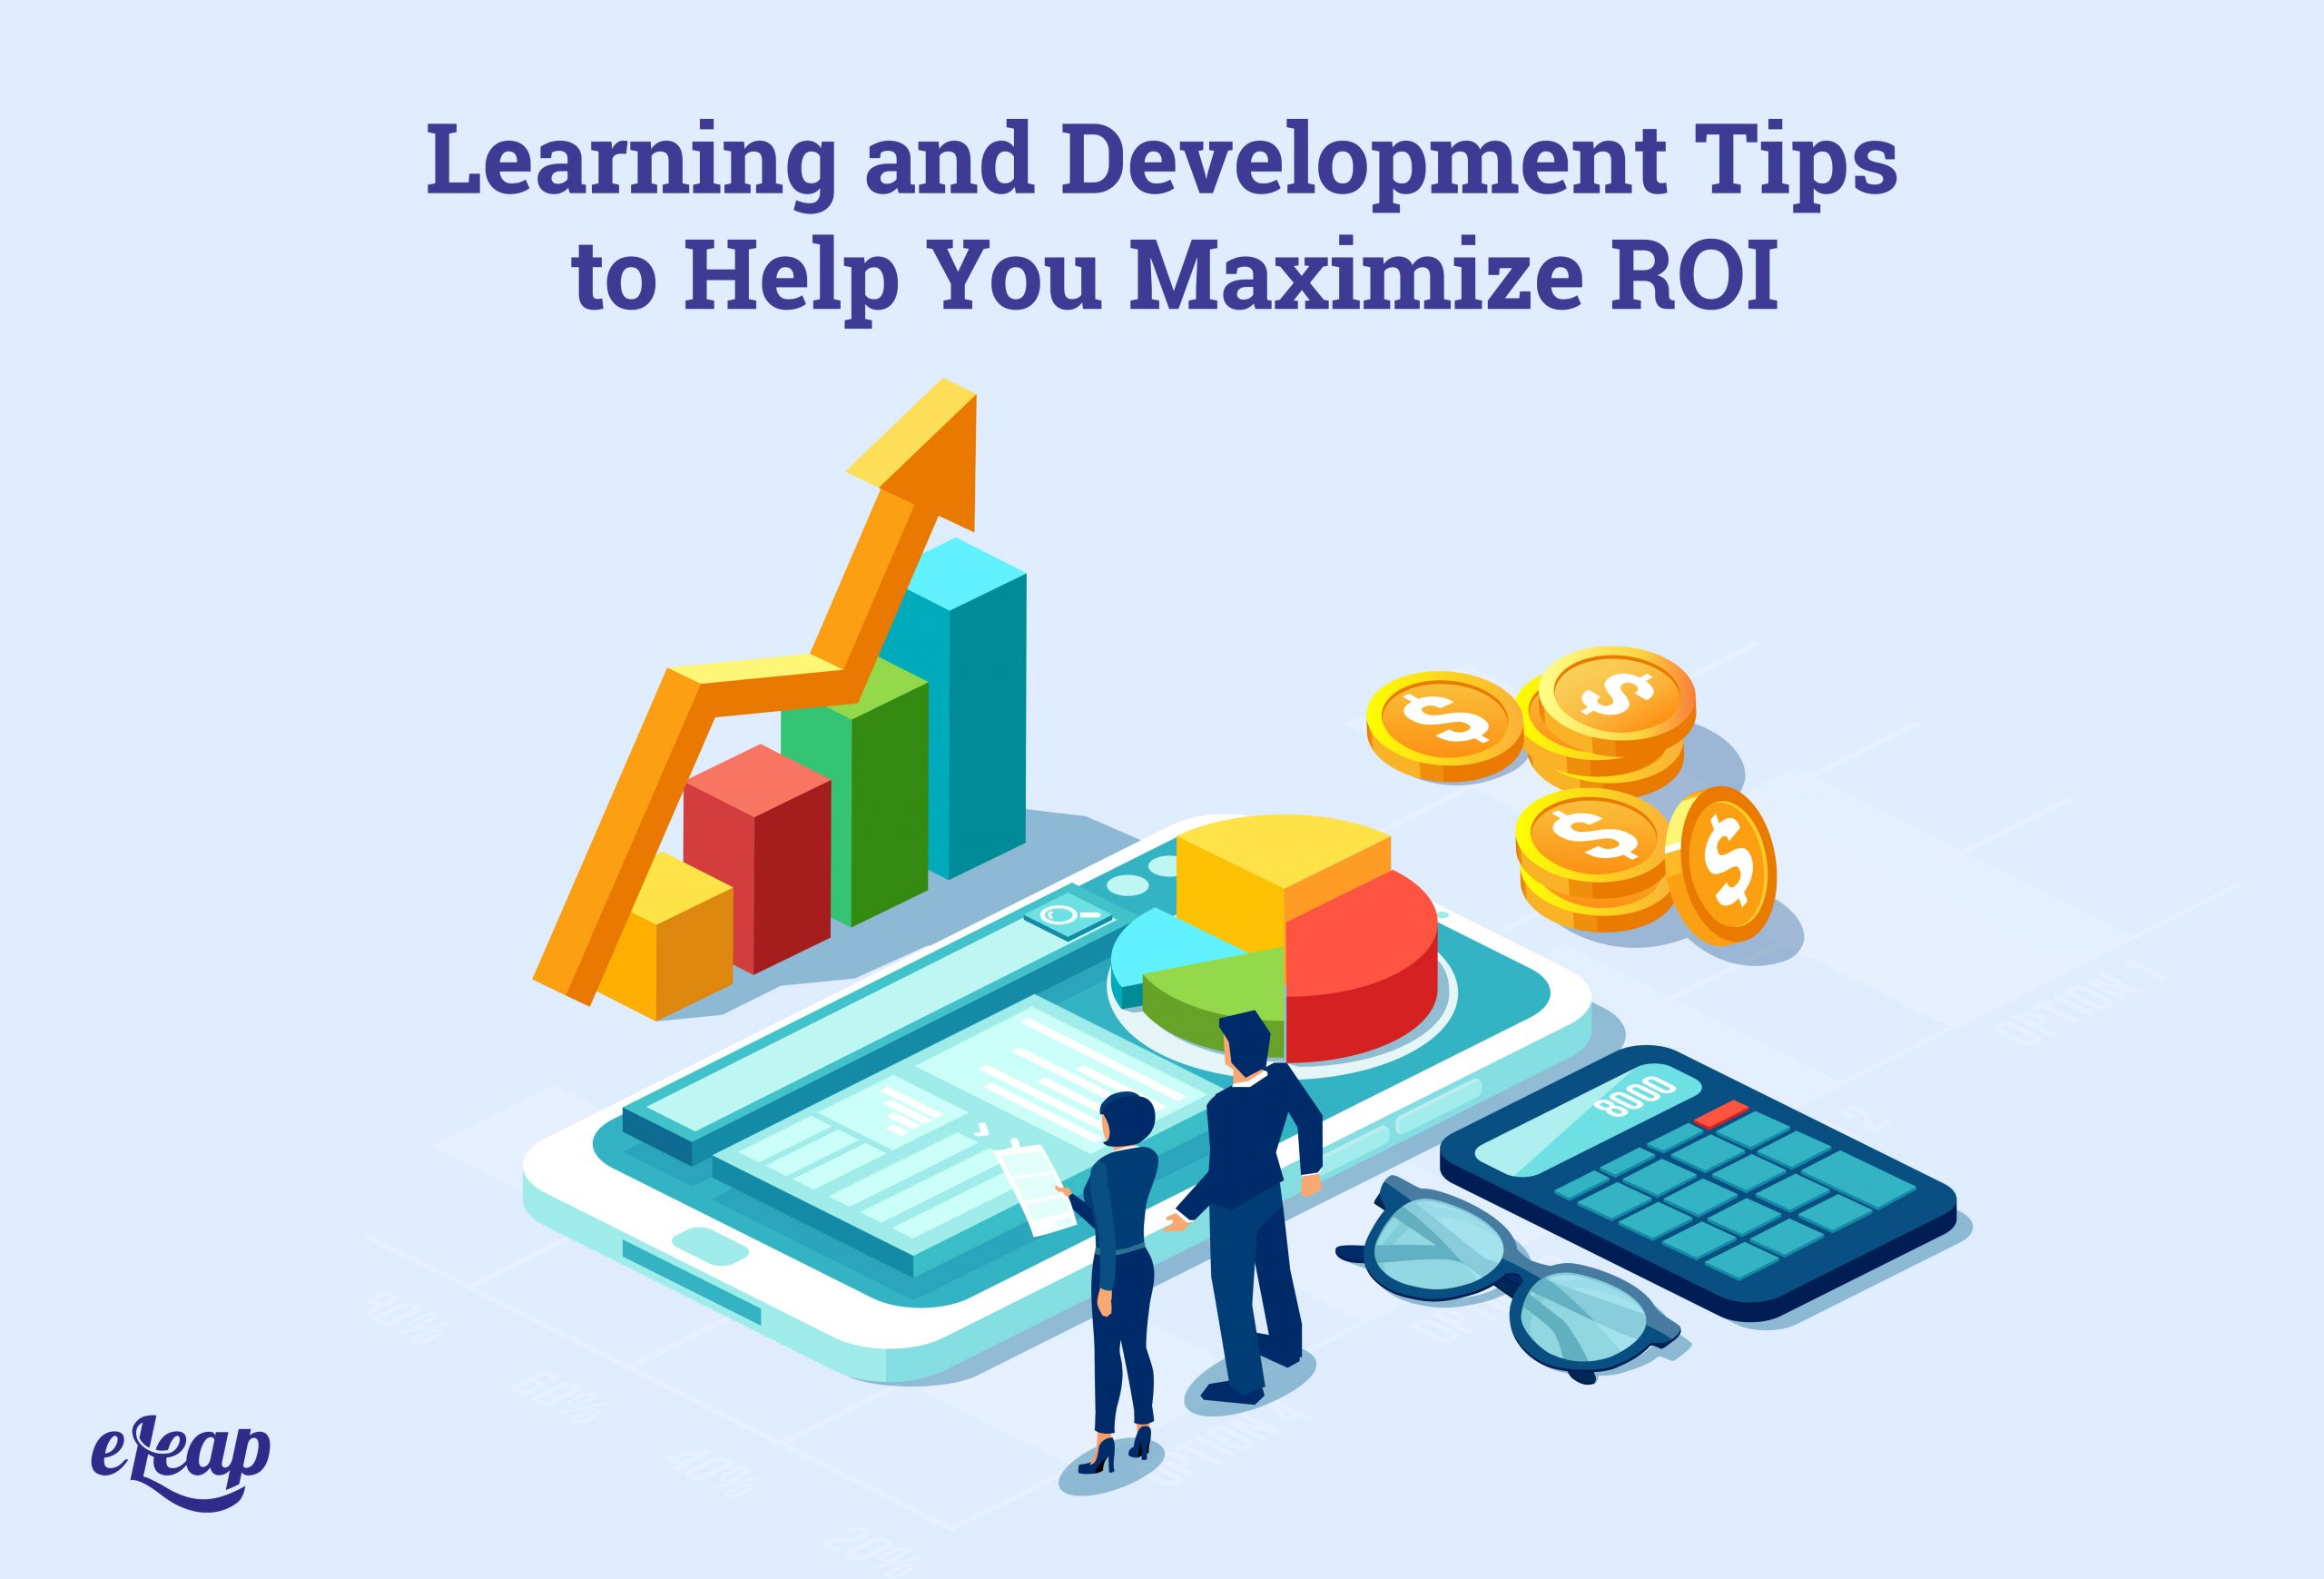 Learning and Development Tips to Help You Maximize ROI